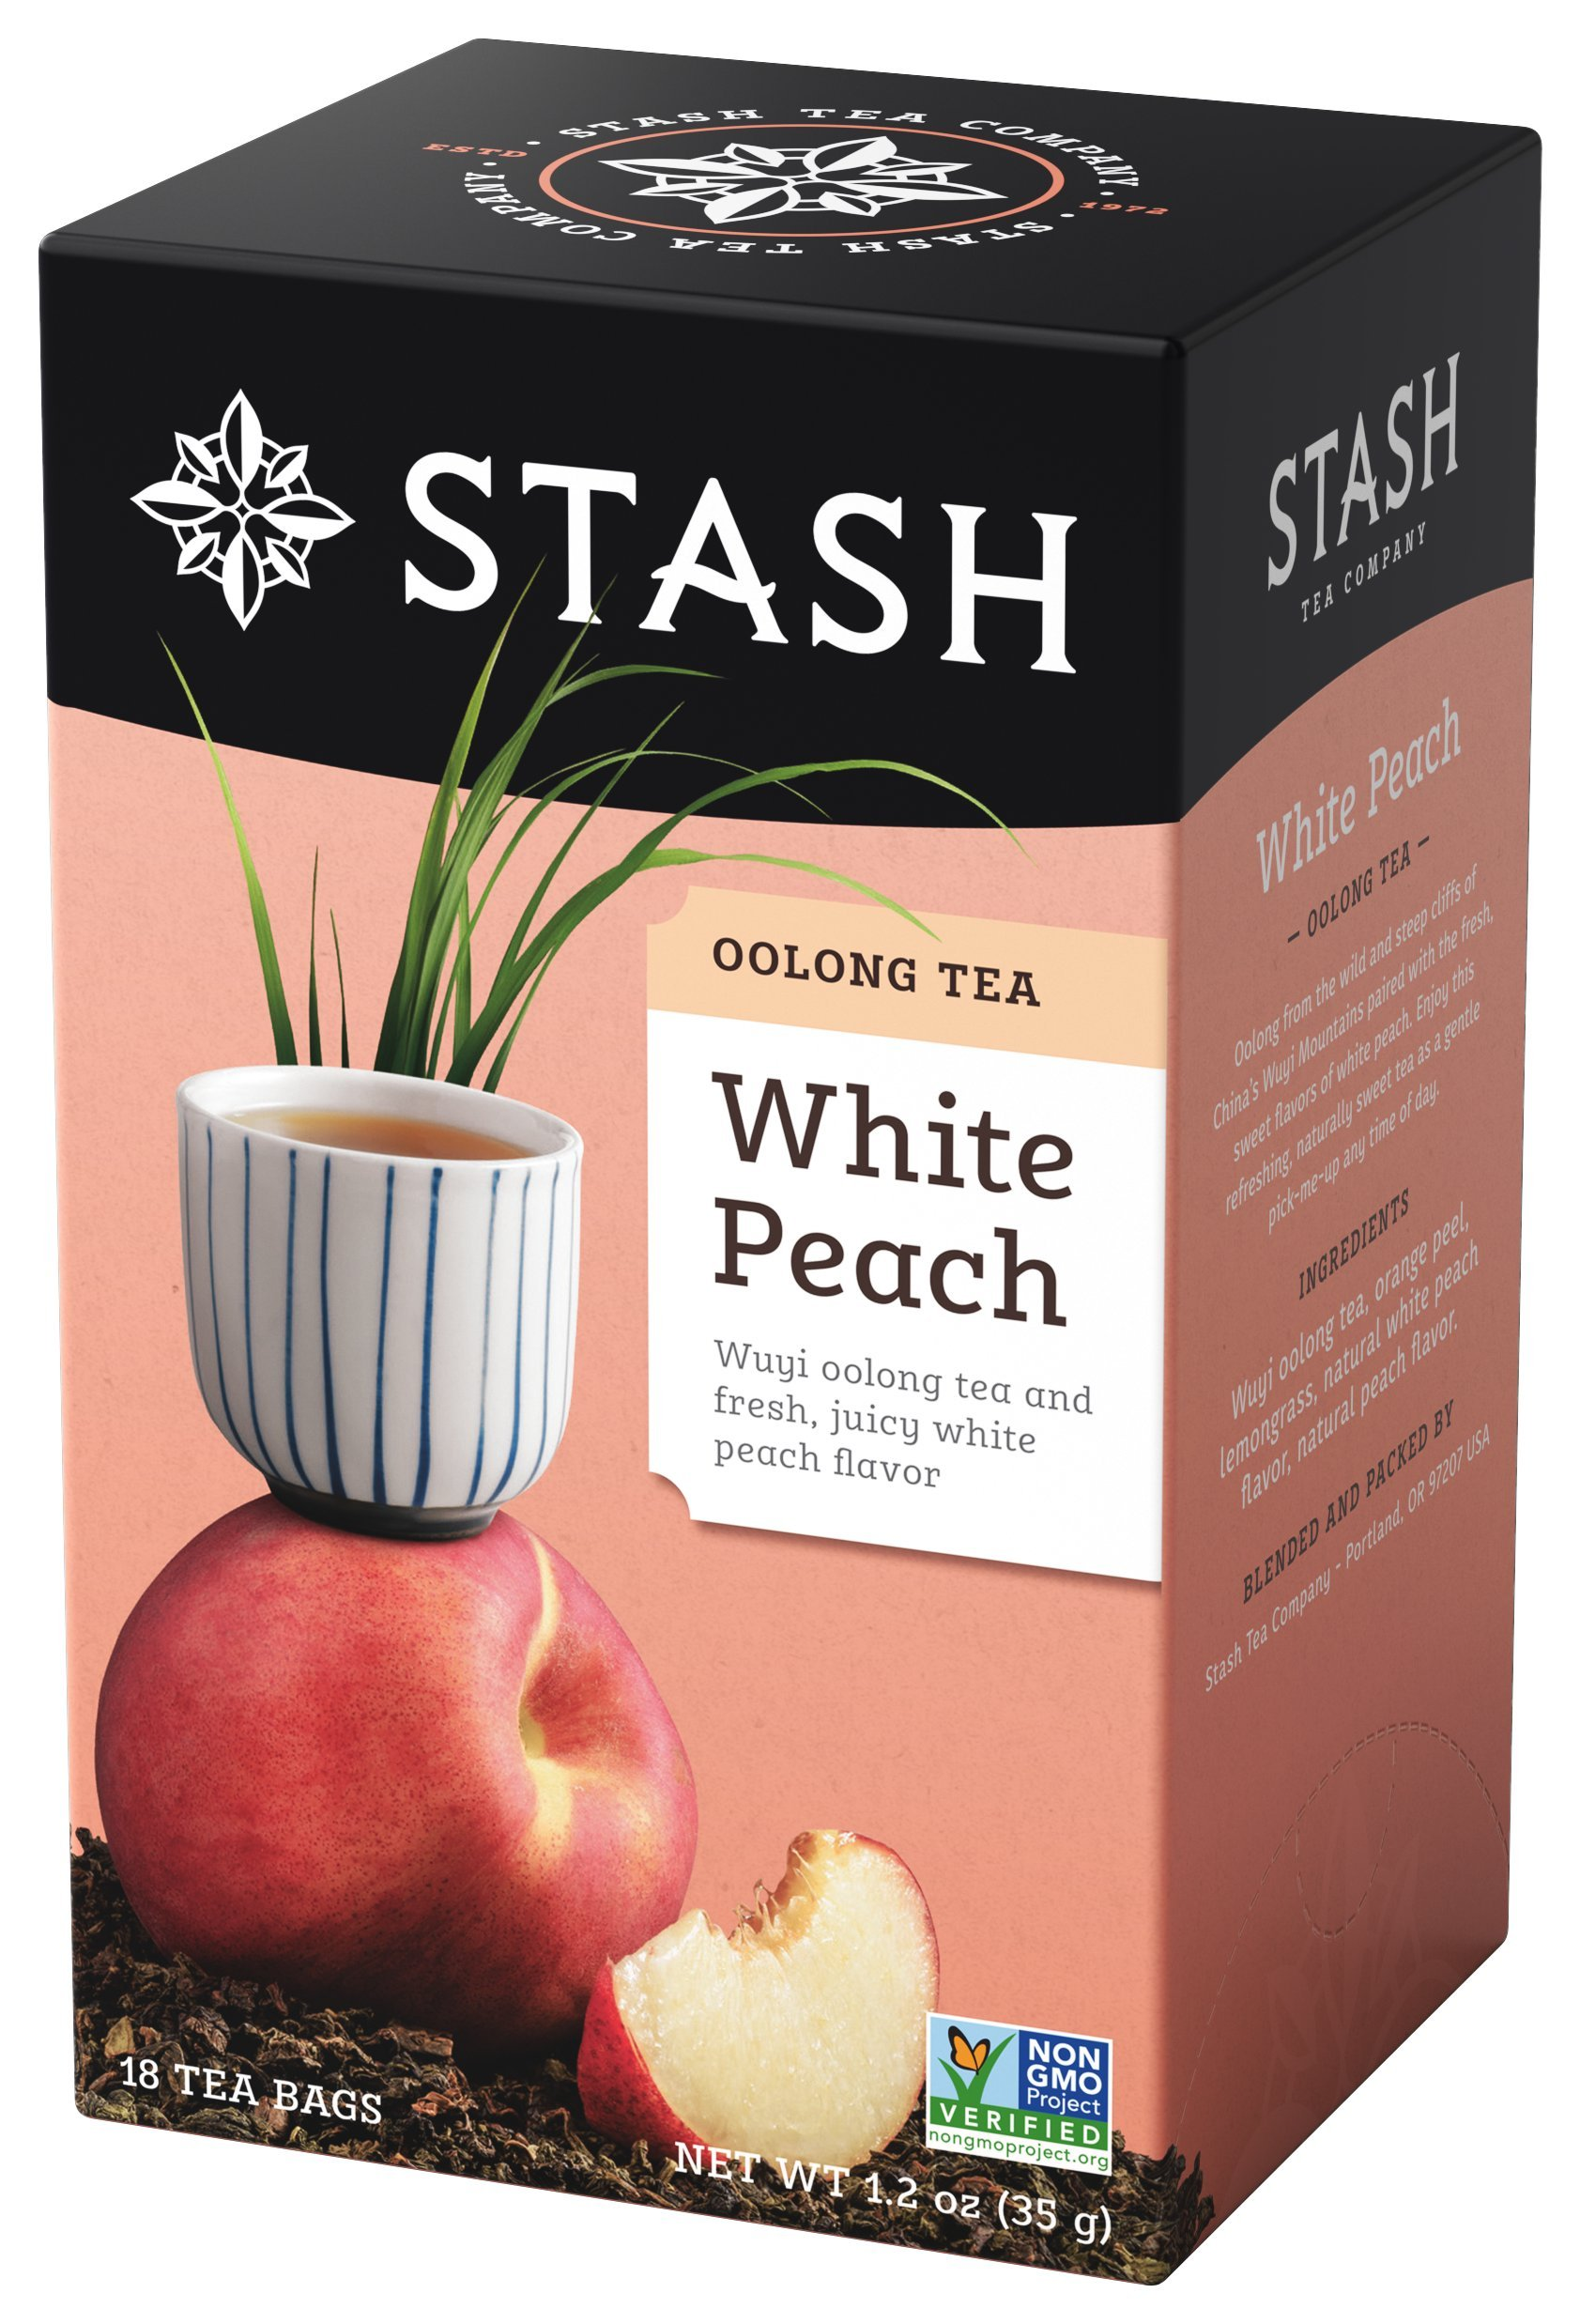 Stash Tea White Peach Wuyi Oolong Tea 18 Count Tea Bags in Foil (Pack of 6) Individual Oolong Black Tea Bags, Use in Teapots Mugs or Cups, Brew Hot Tea or Iced Tea by Stash Tea